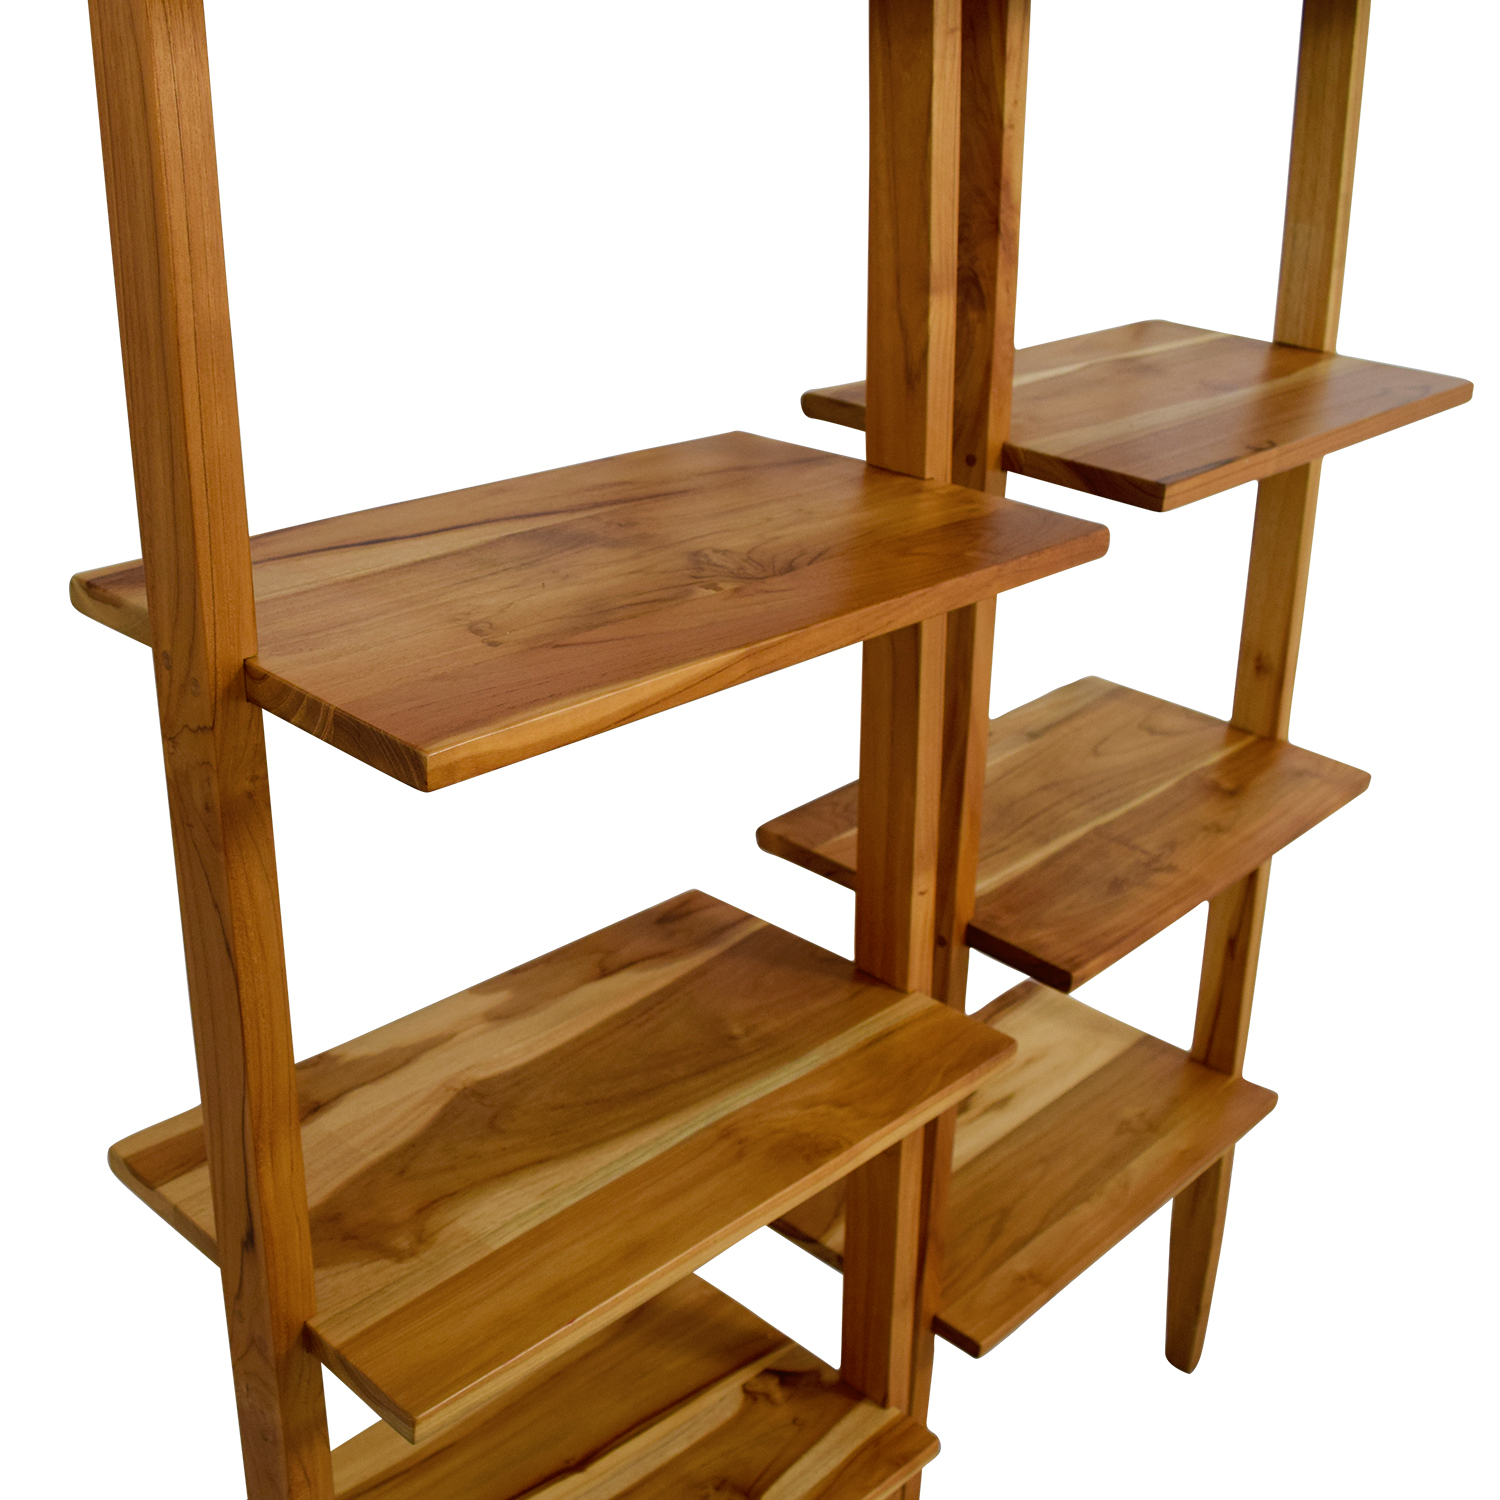 Buy Room Board Wood Ladder Bookshelves Bookcases Shelving